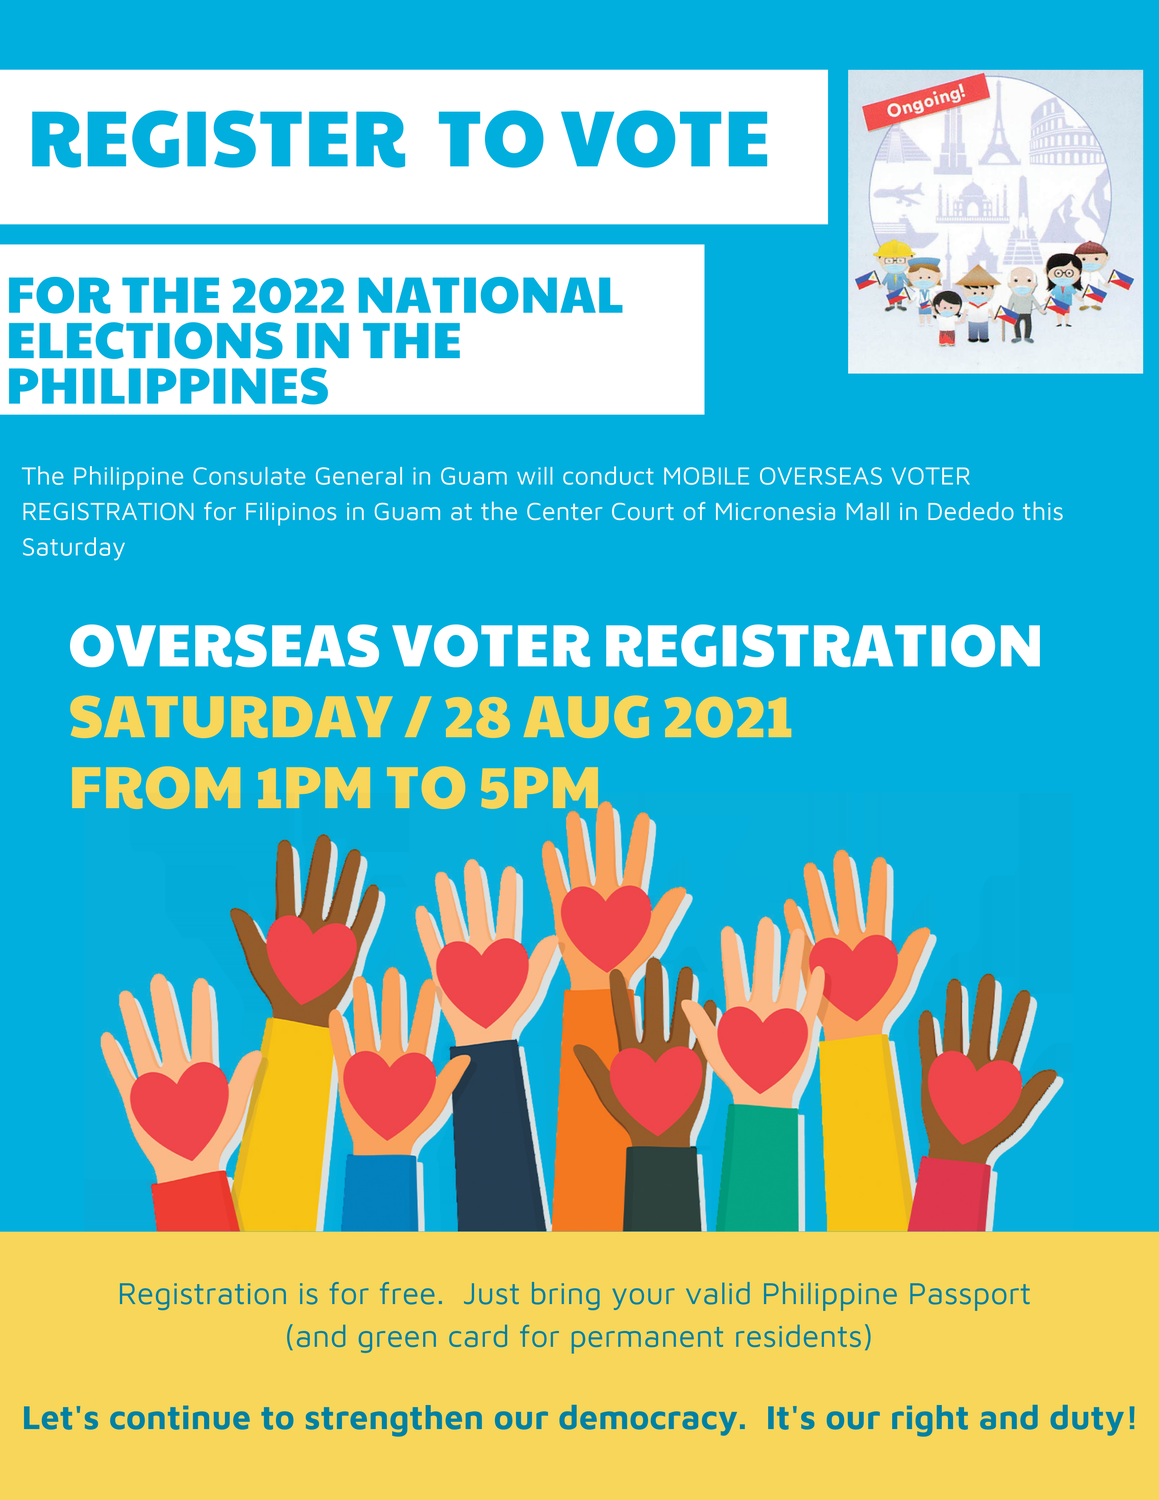 Three days to go: Overseas Voter Registration at the Micronesia Mall, 28 August 2021